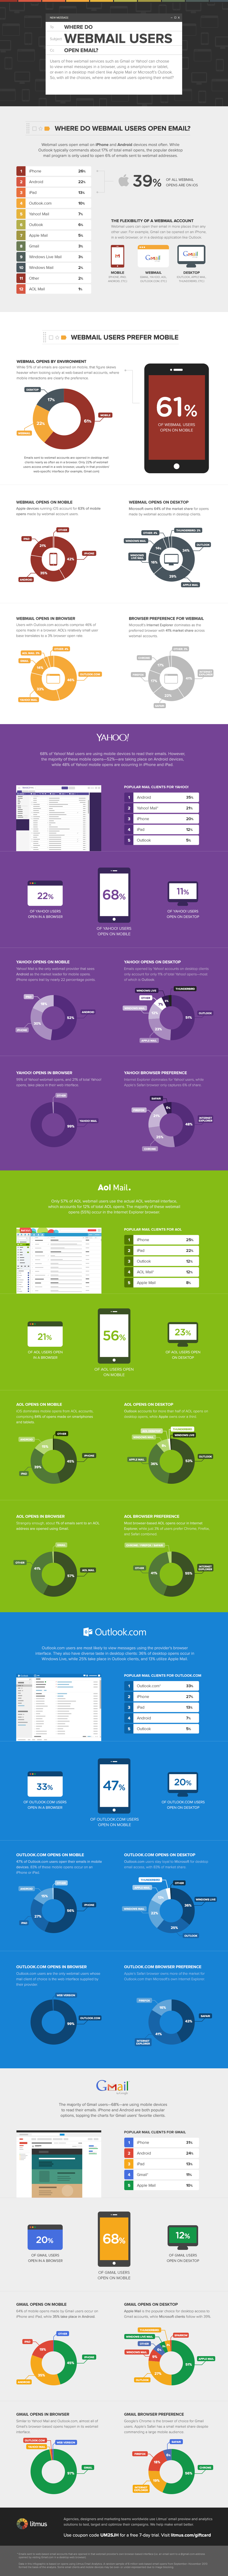 Growth in mobile email clients - infographics